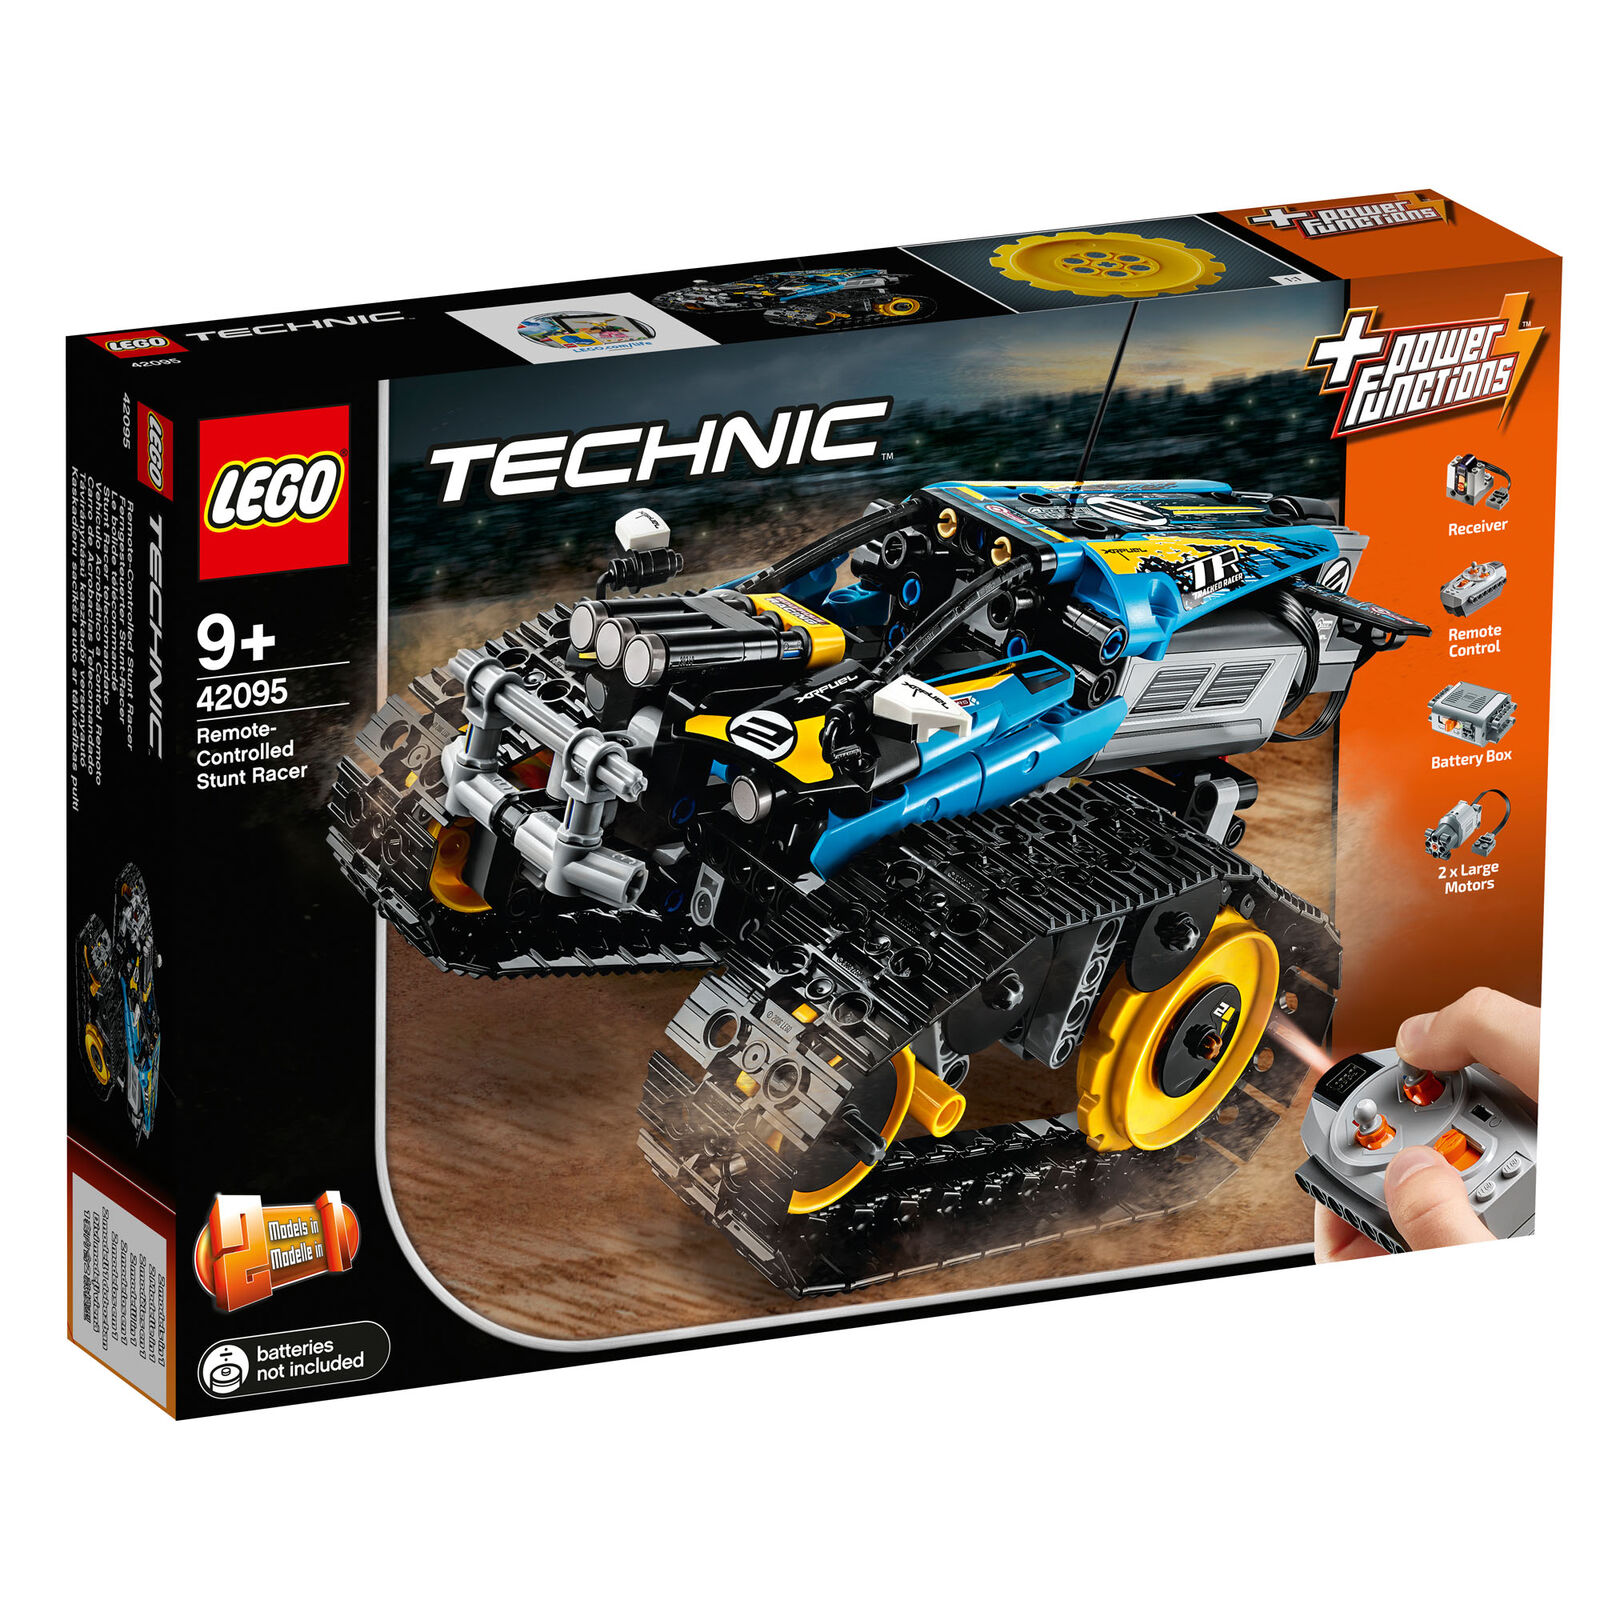 42095 LEGO Technic Remote-Controlled Stunt Racer 324pcs Age 9+ New Release 2019